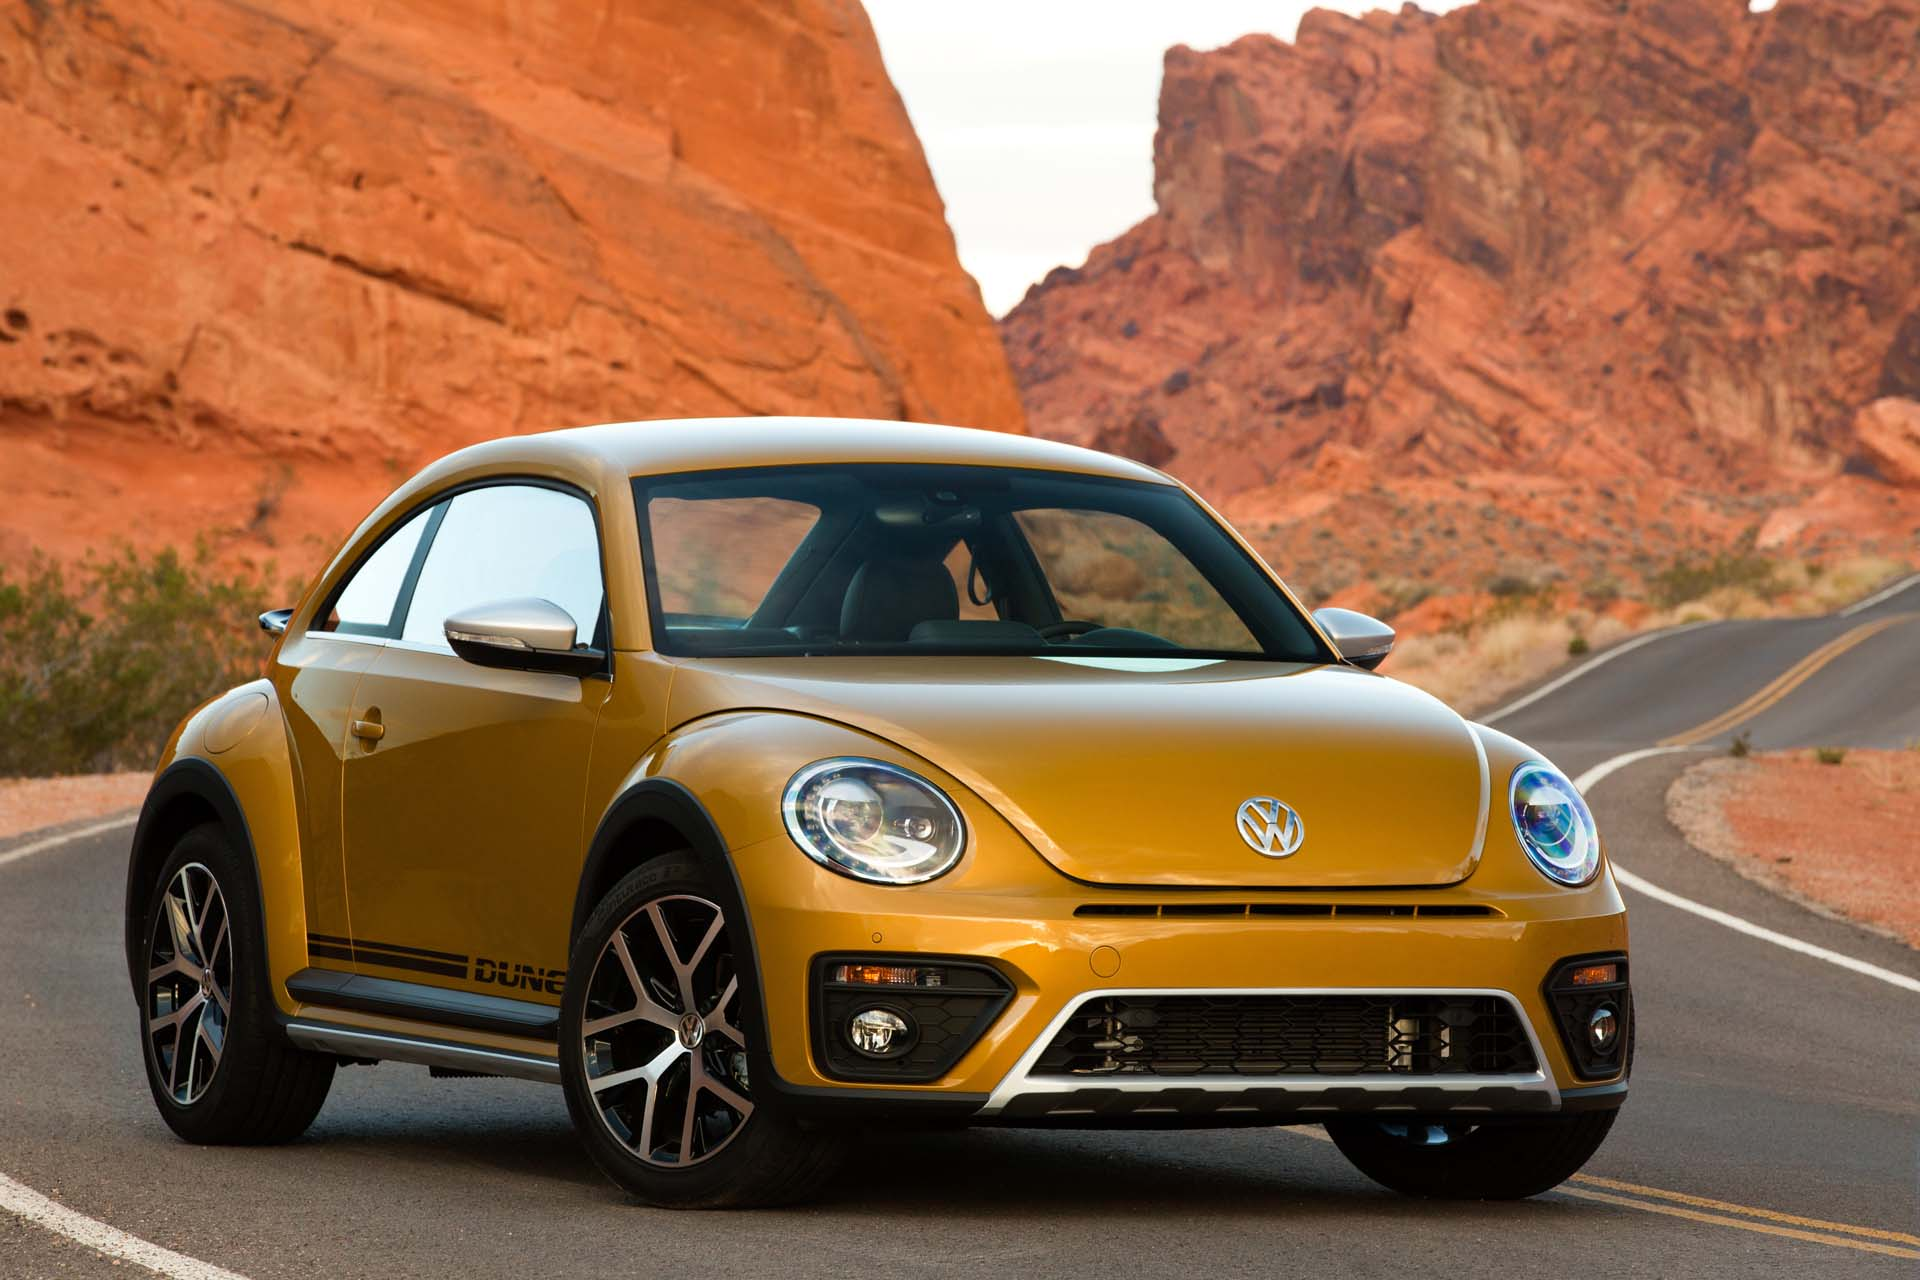 2018 Volkswagen Beetle (vw) Review, Ratings, Specs, Prices